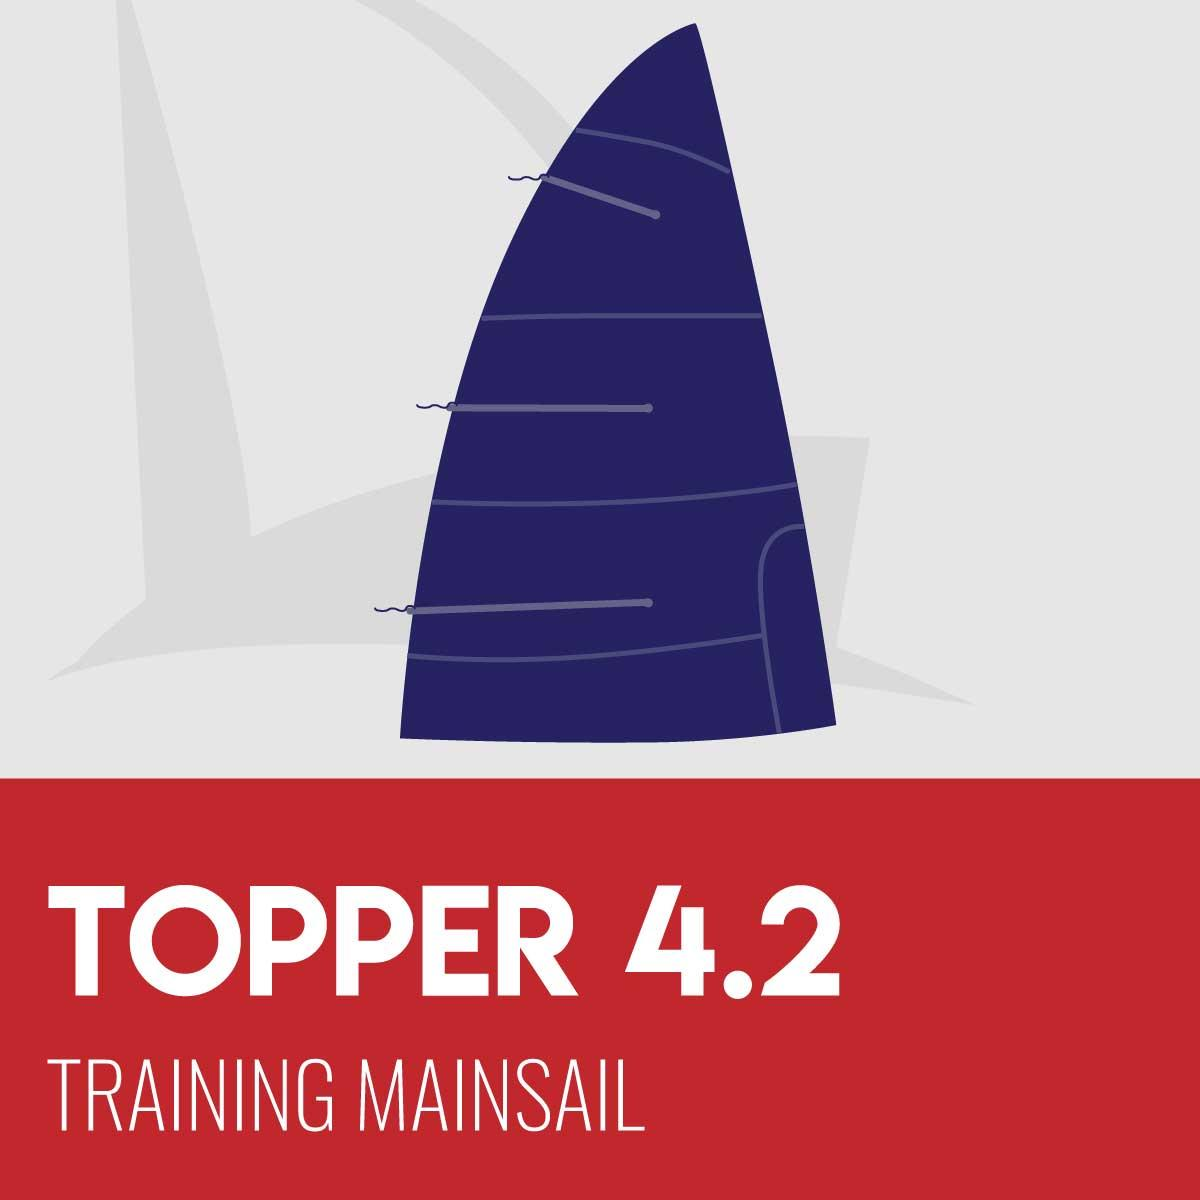 Topper 4.2 Training Mainsail